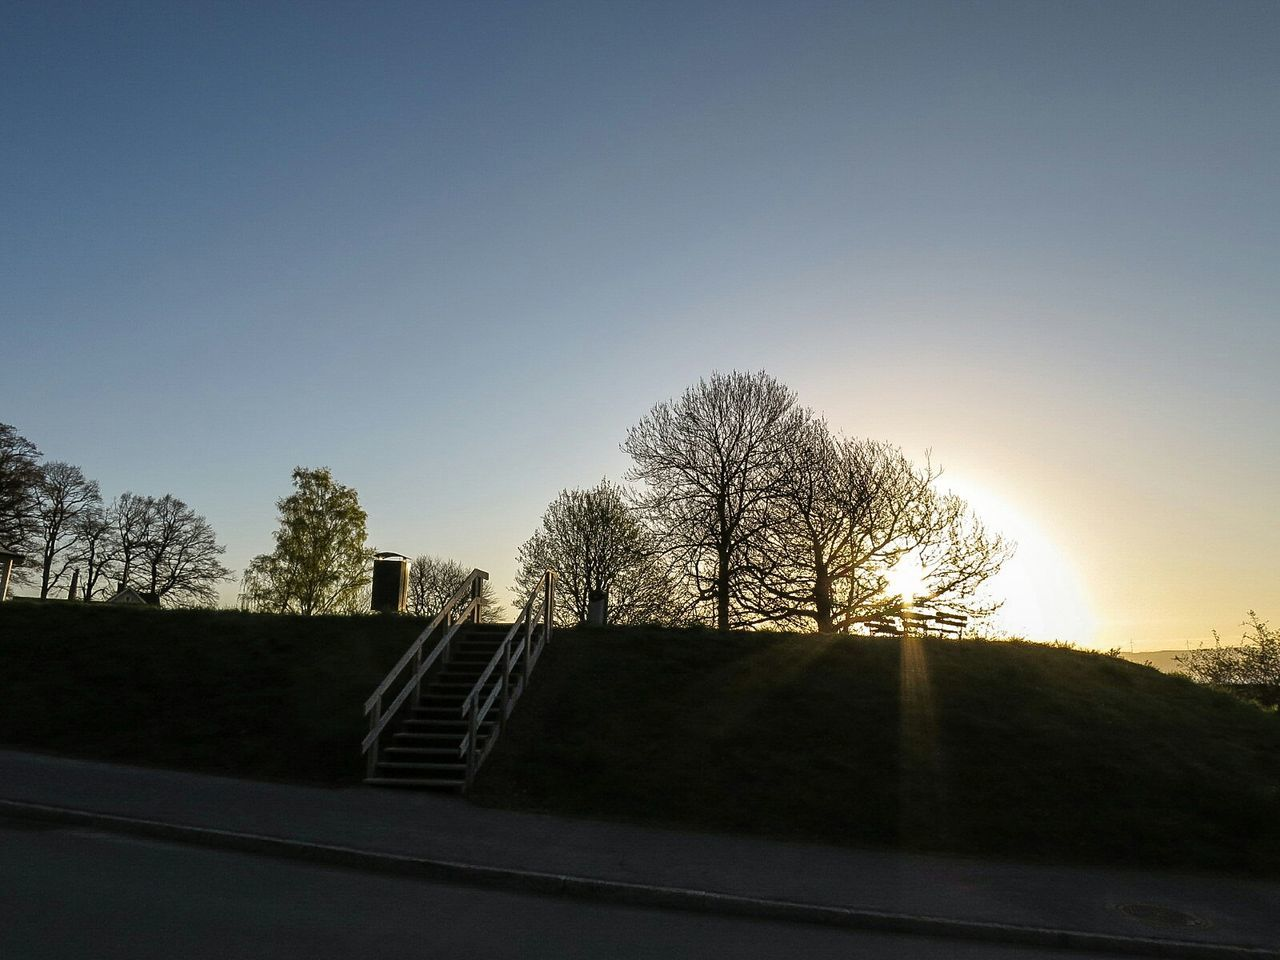 tree, clear sky, no people, bare tree, sunlight, outdoors, road, day, sky, nature, sport